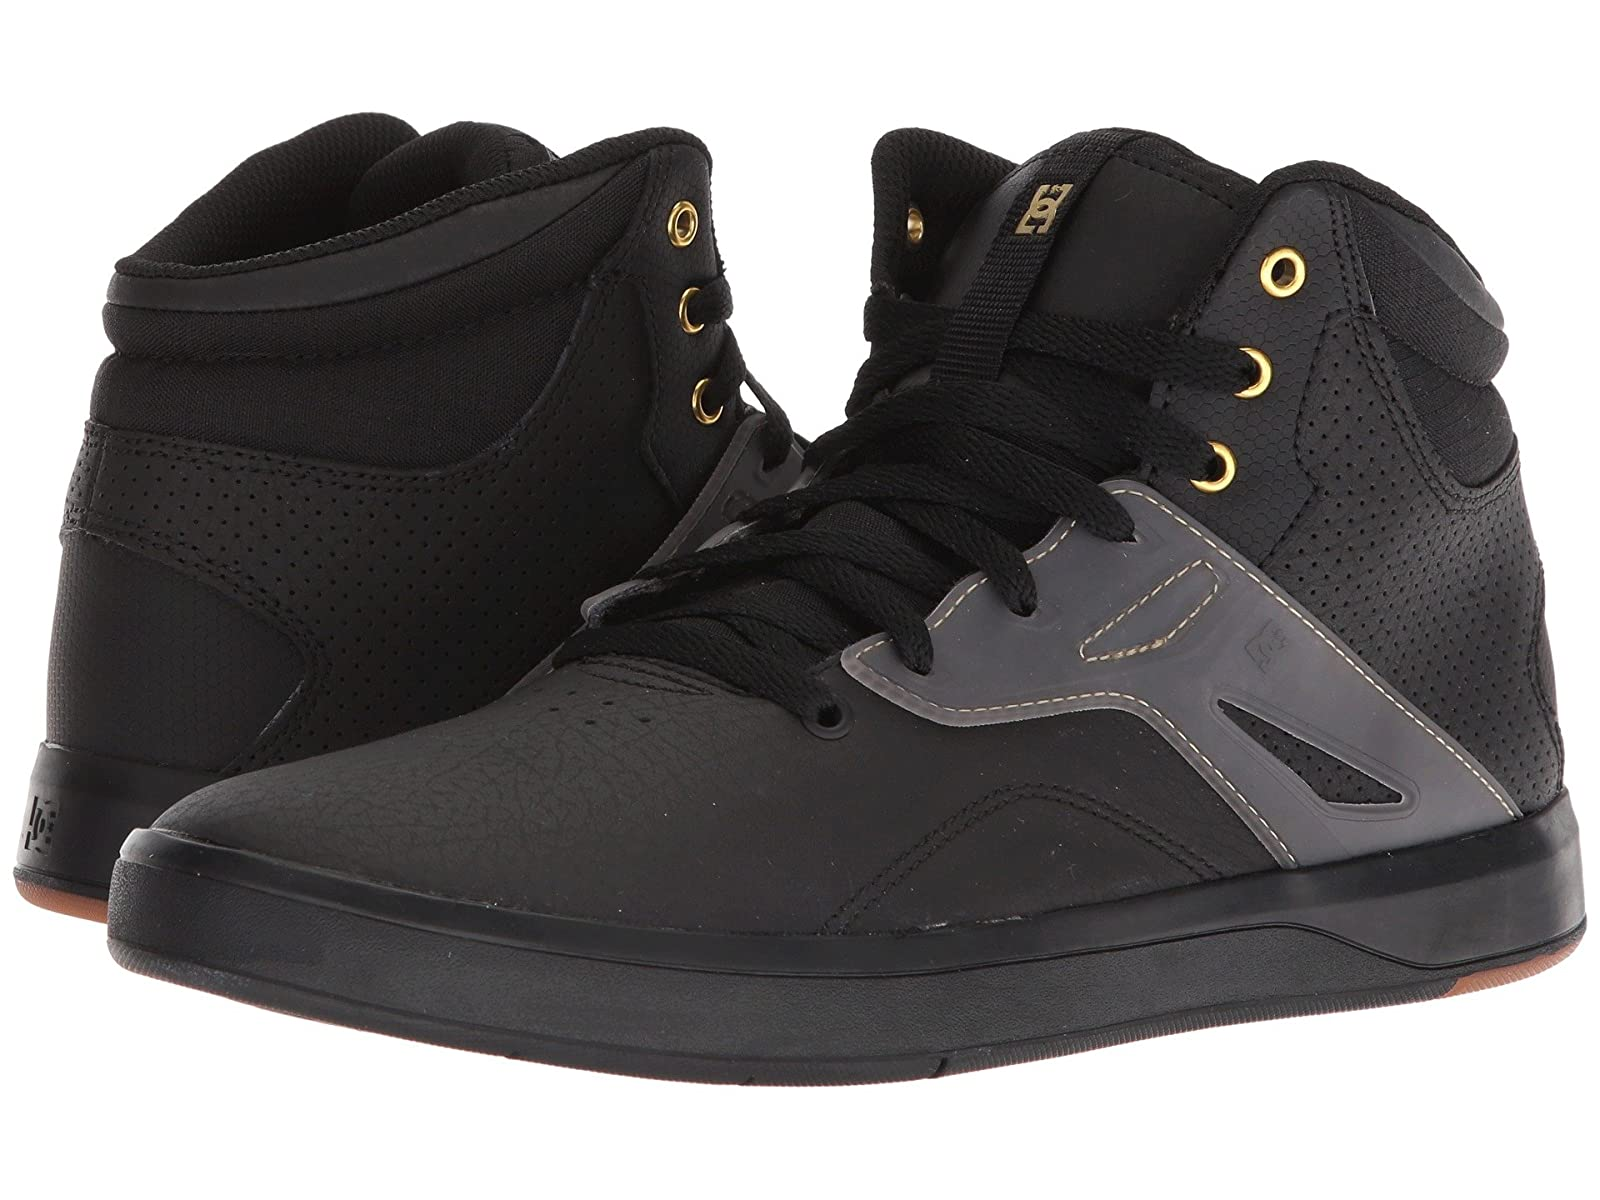 DC Frequency HighAtmospheric grades have affordable shoes